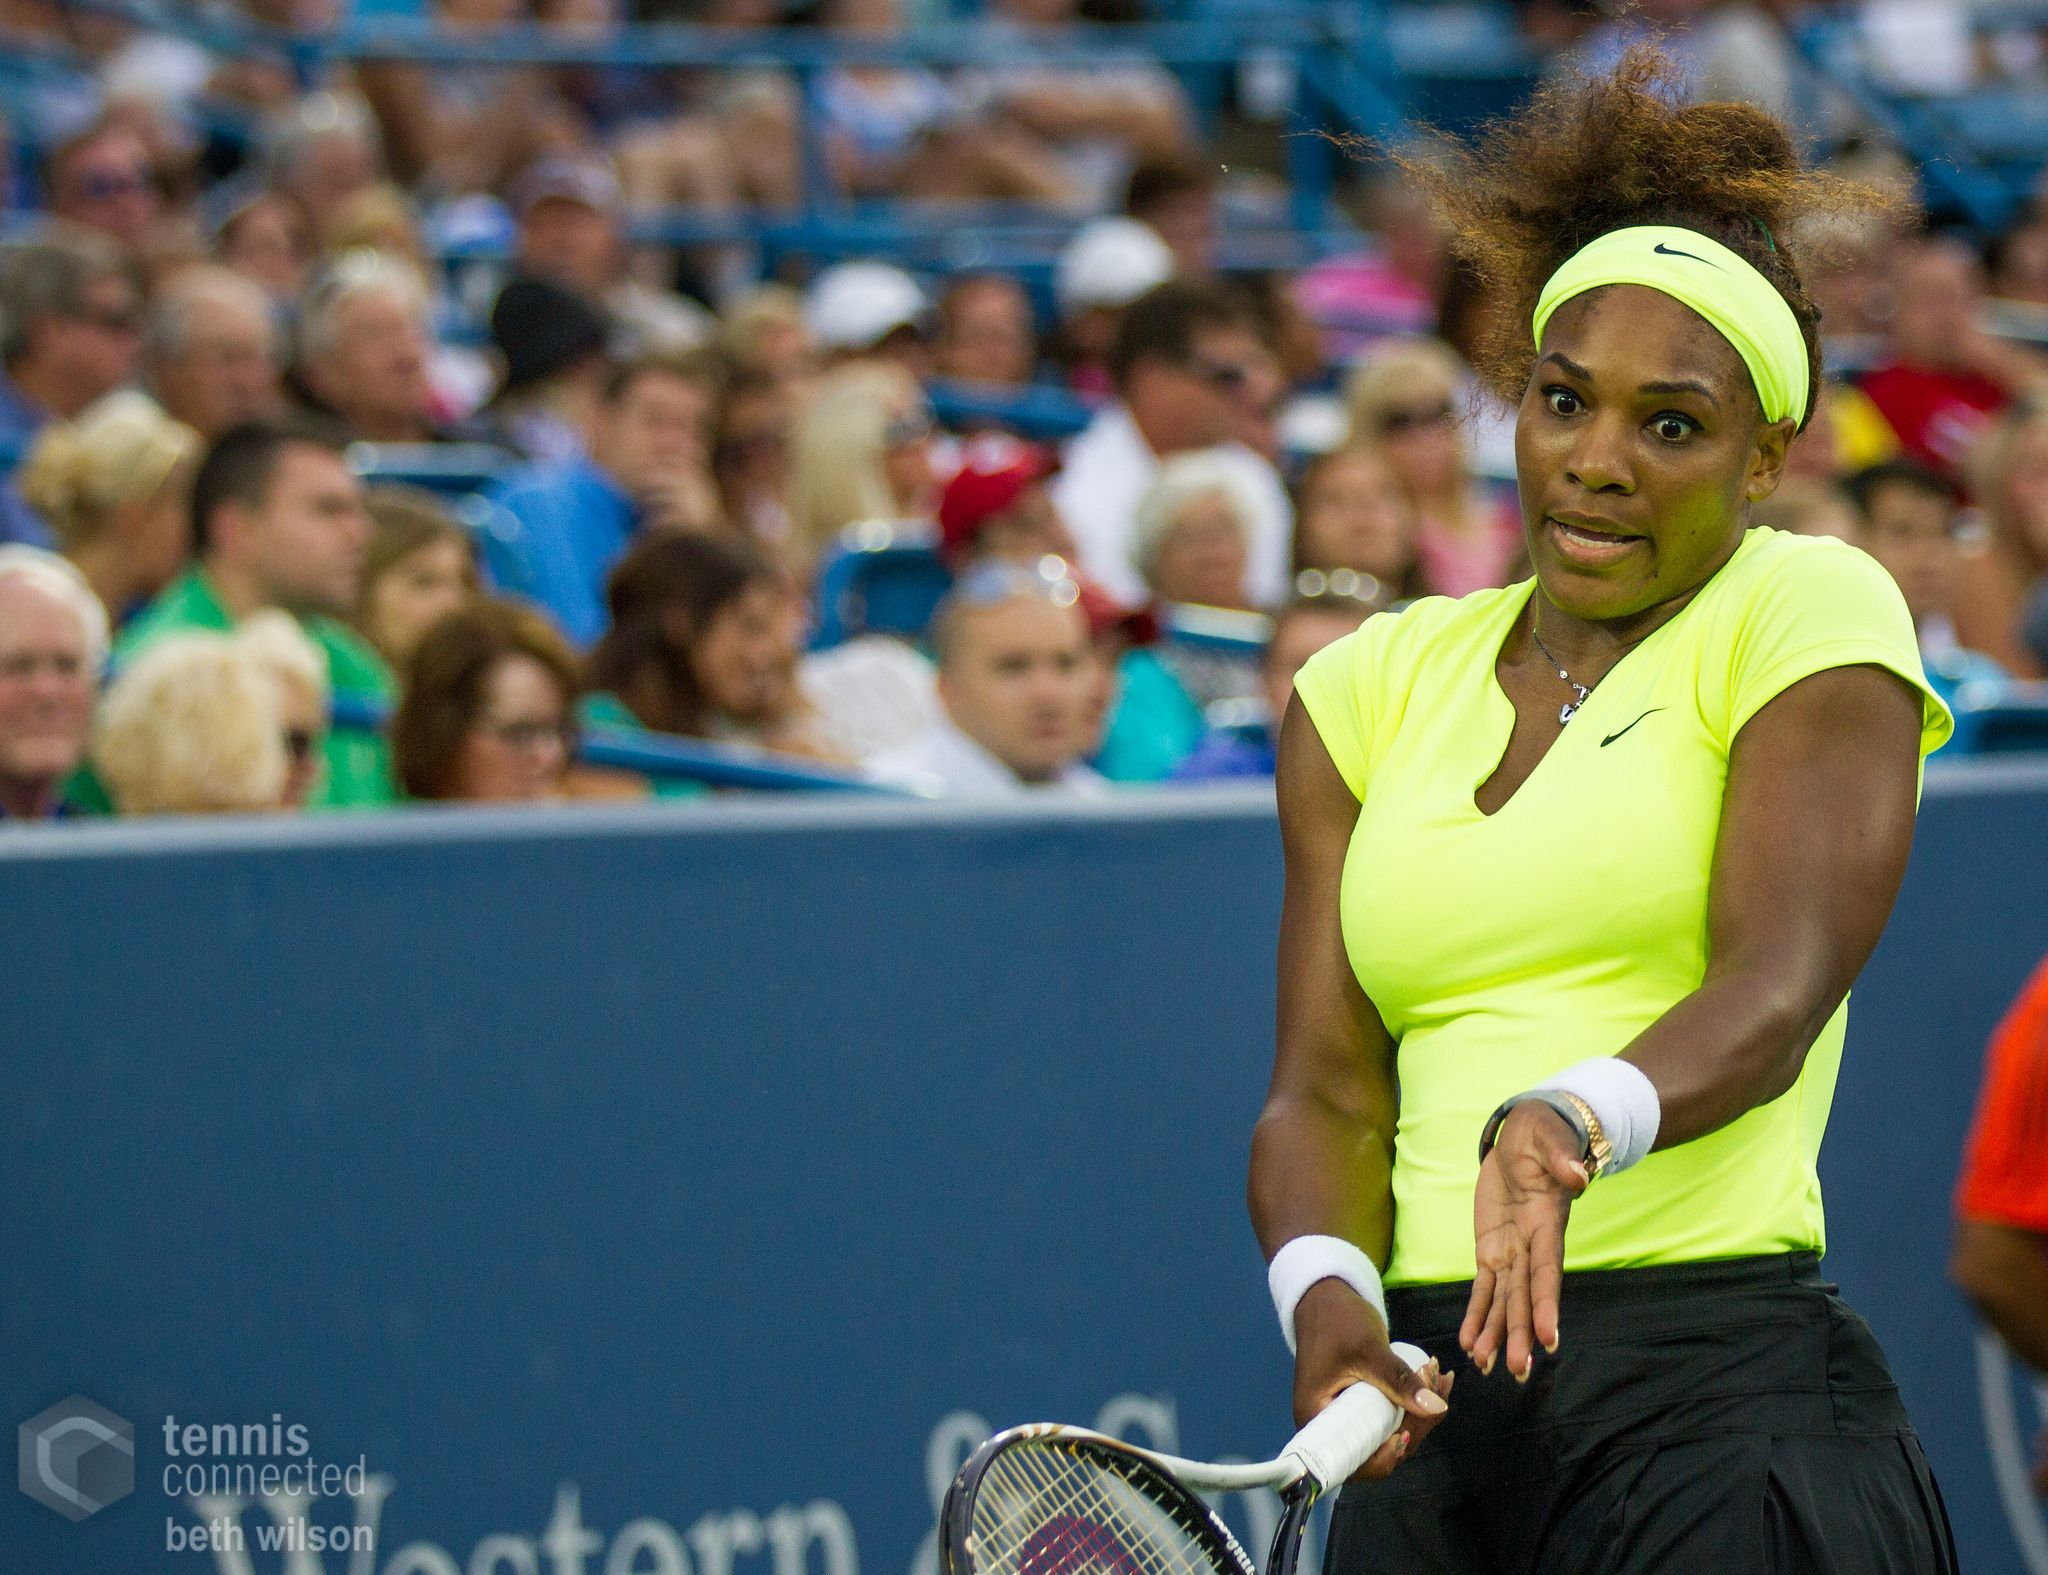 Serena Williams net worth Continuously Grow Even Off-Court, Lewis Hamilton Making the Athlete Happy - http://www.gackhollywood.com/2016/11/serena-williams-net-worth-continuously-grow-even-off-court-lewis-hamilton-making-athlete-happy/